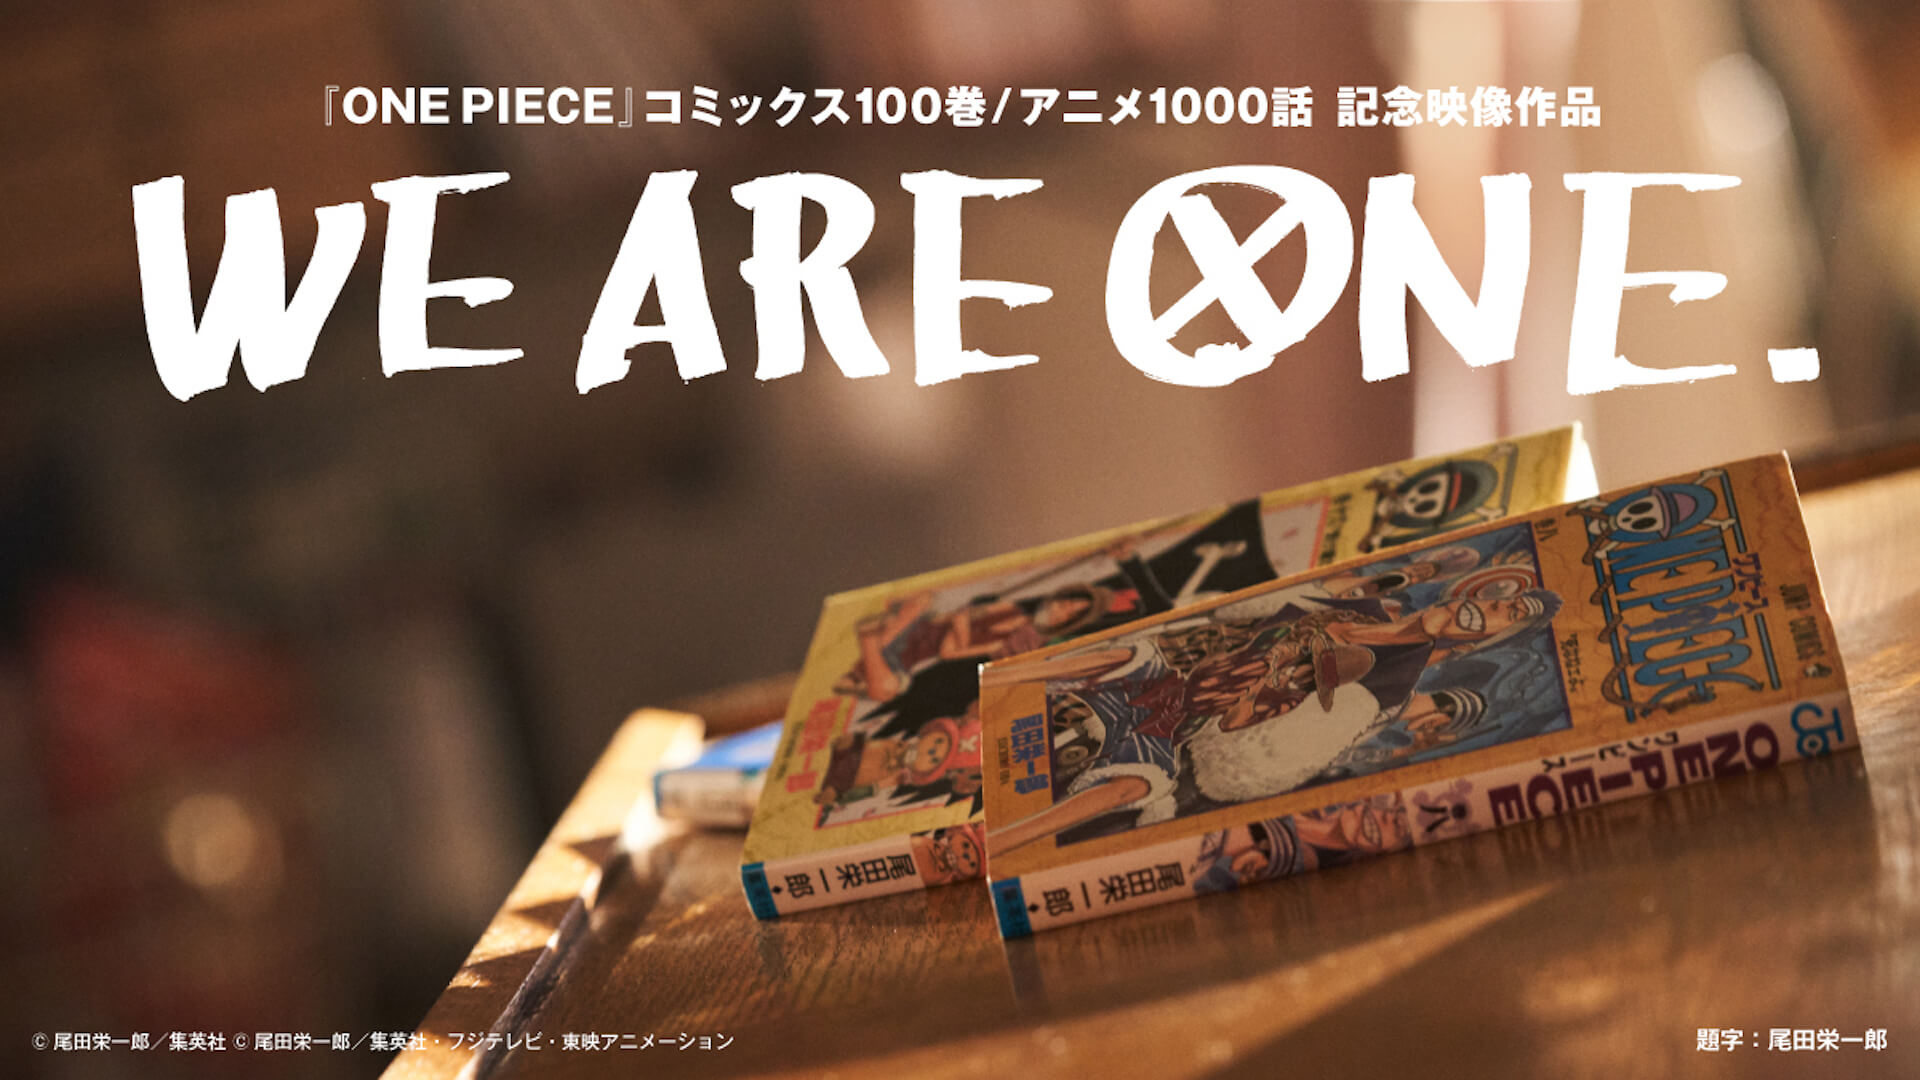 『ONE PIECE』コミックス100巻&アニメ1000話記念!実写×アニメの豪華映像作品『WE ARE ONE.』プロジェクトが解禁 art210722_radwimps_onepiece_2